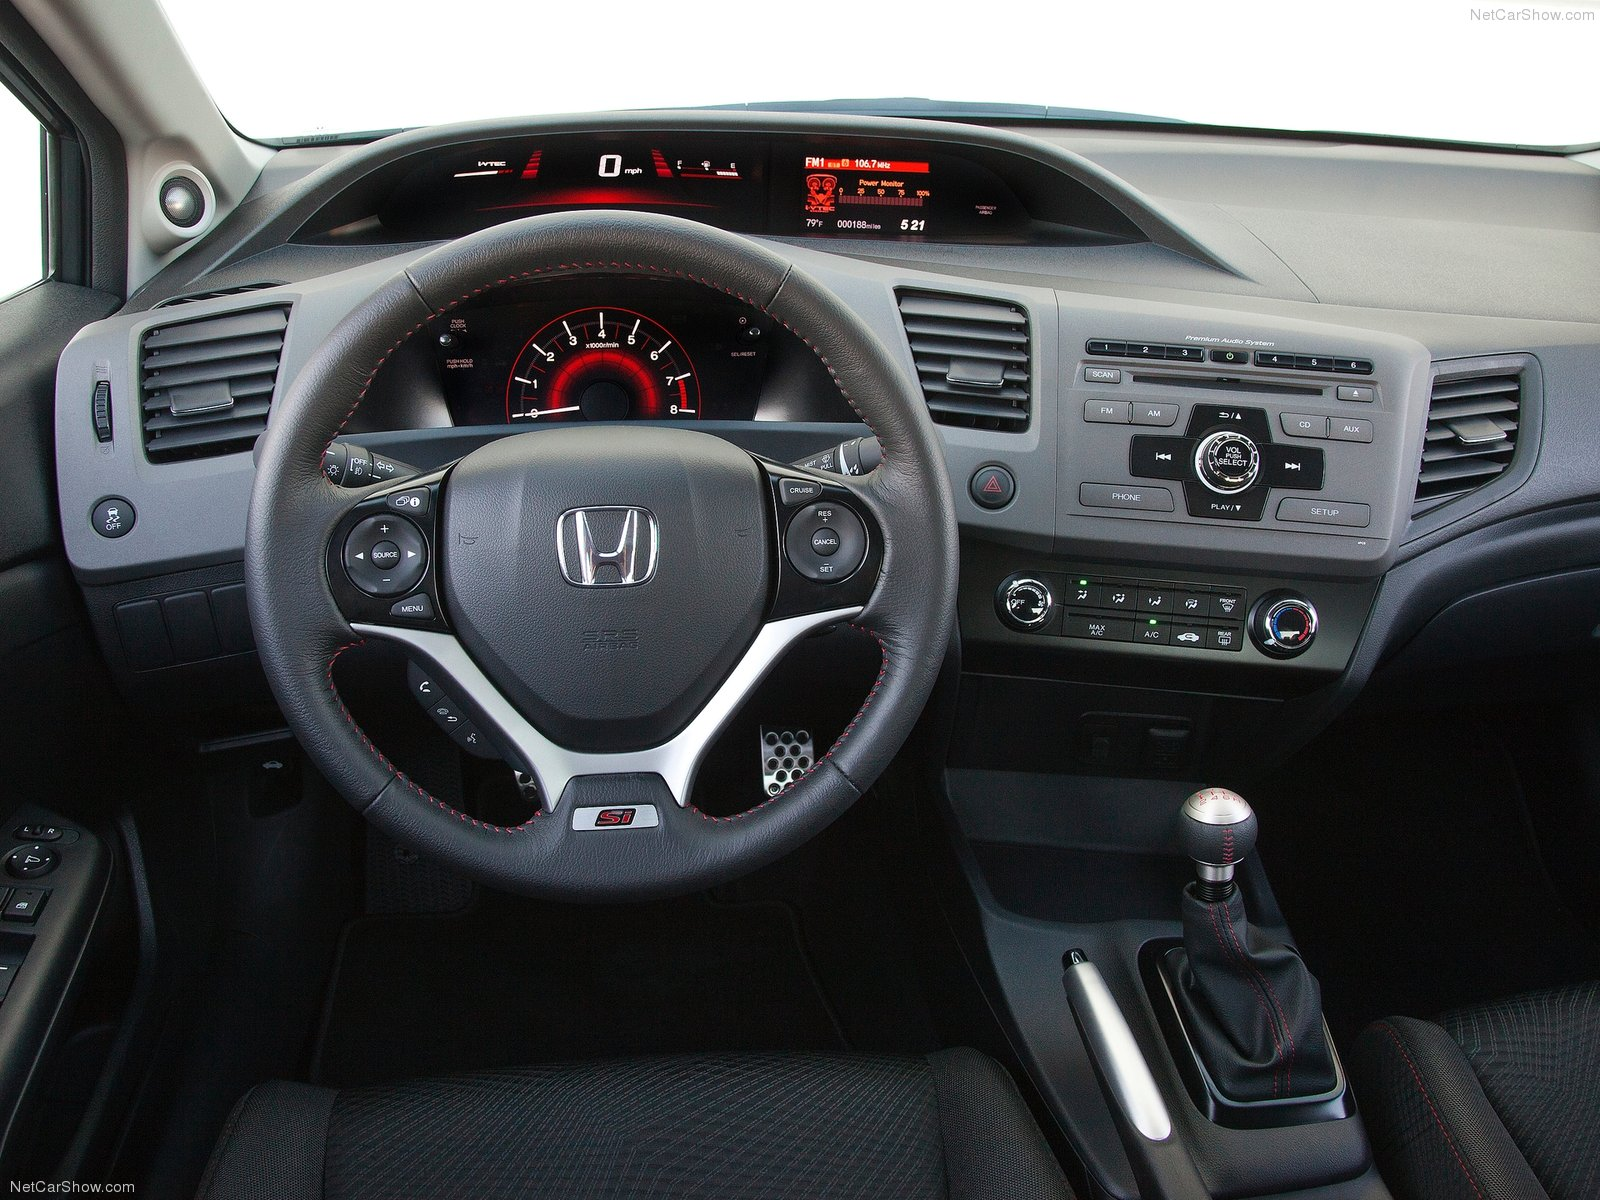 Tuning Honda Civic 2012 Online Accessories And Spare Parts For Tuning Honda Civic 2012